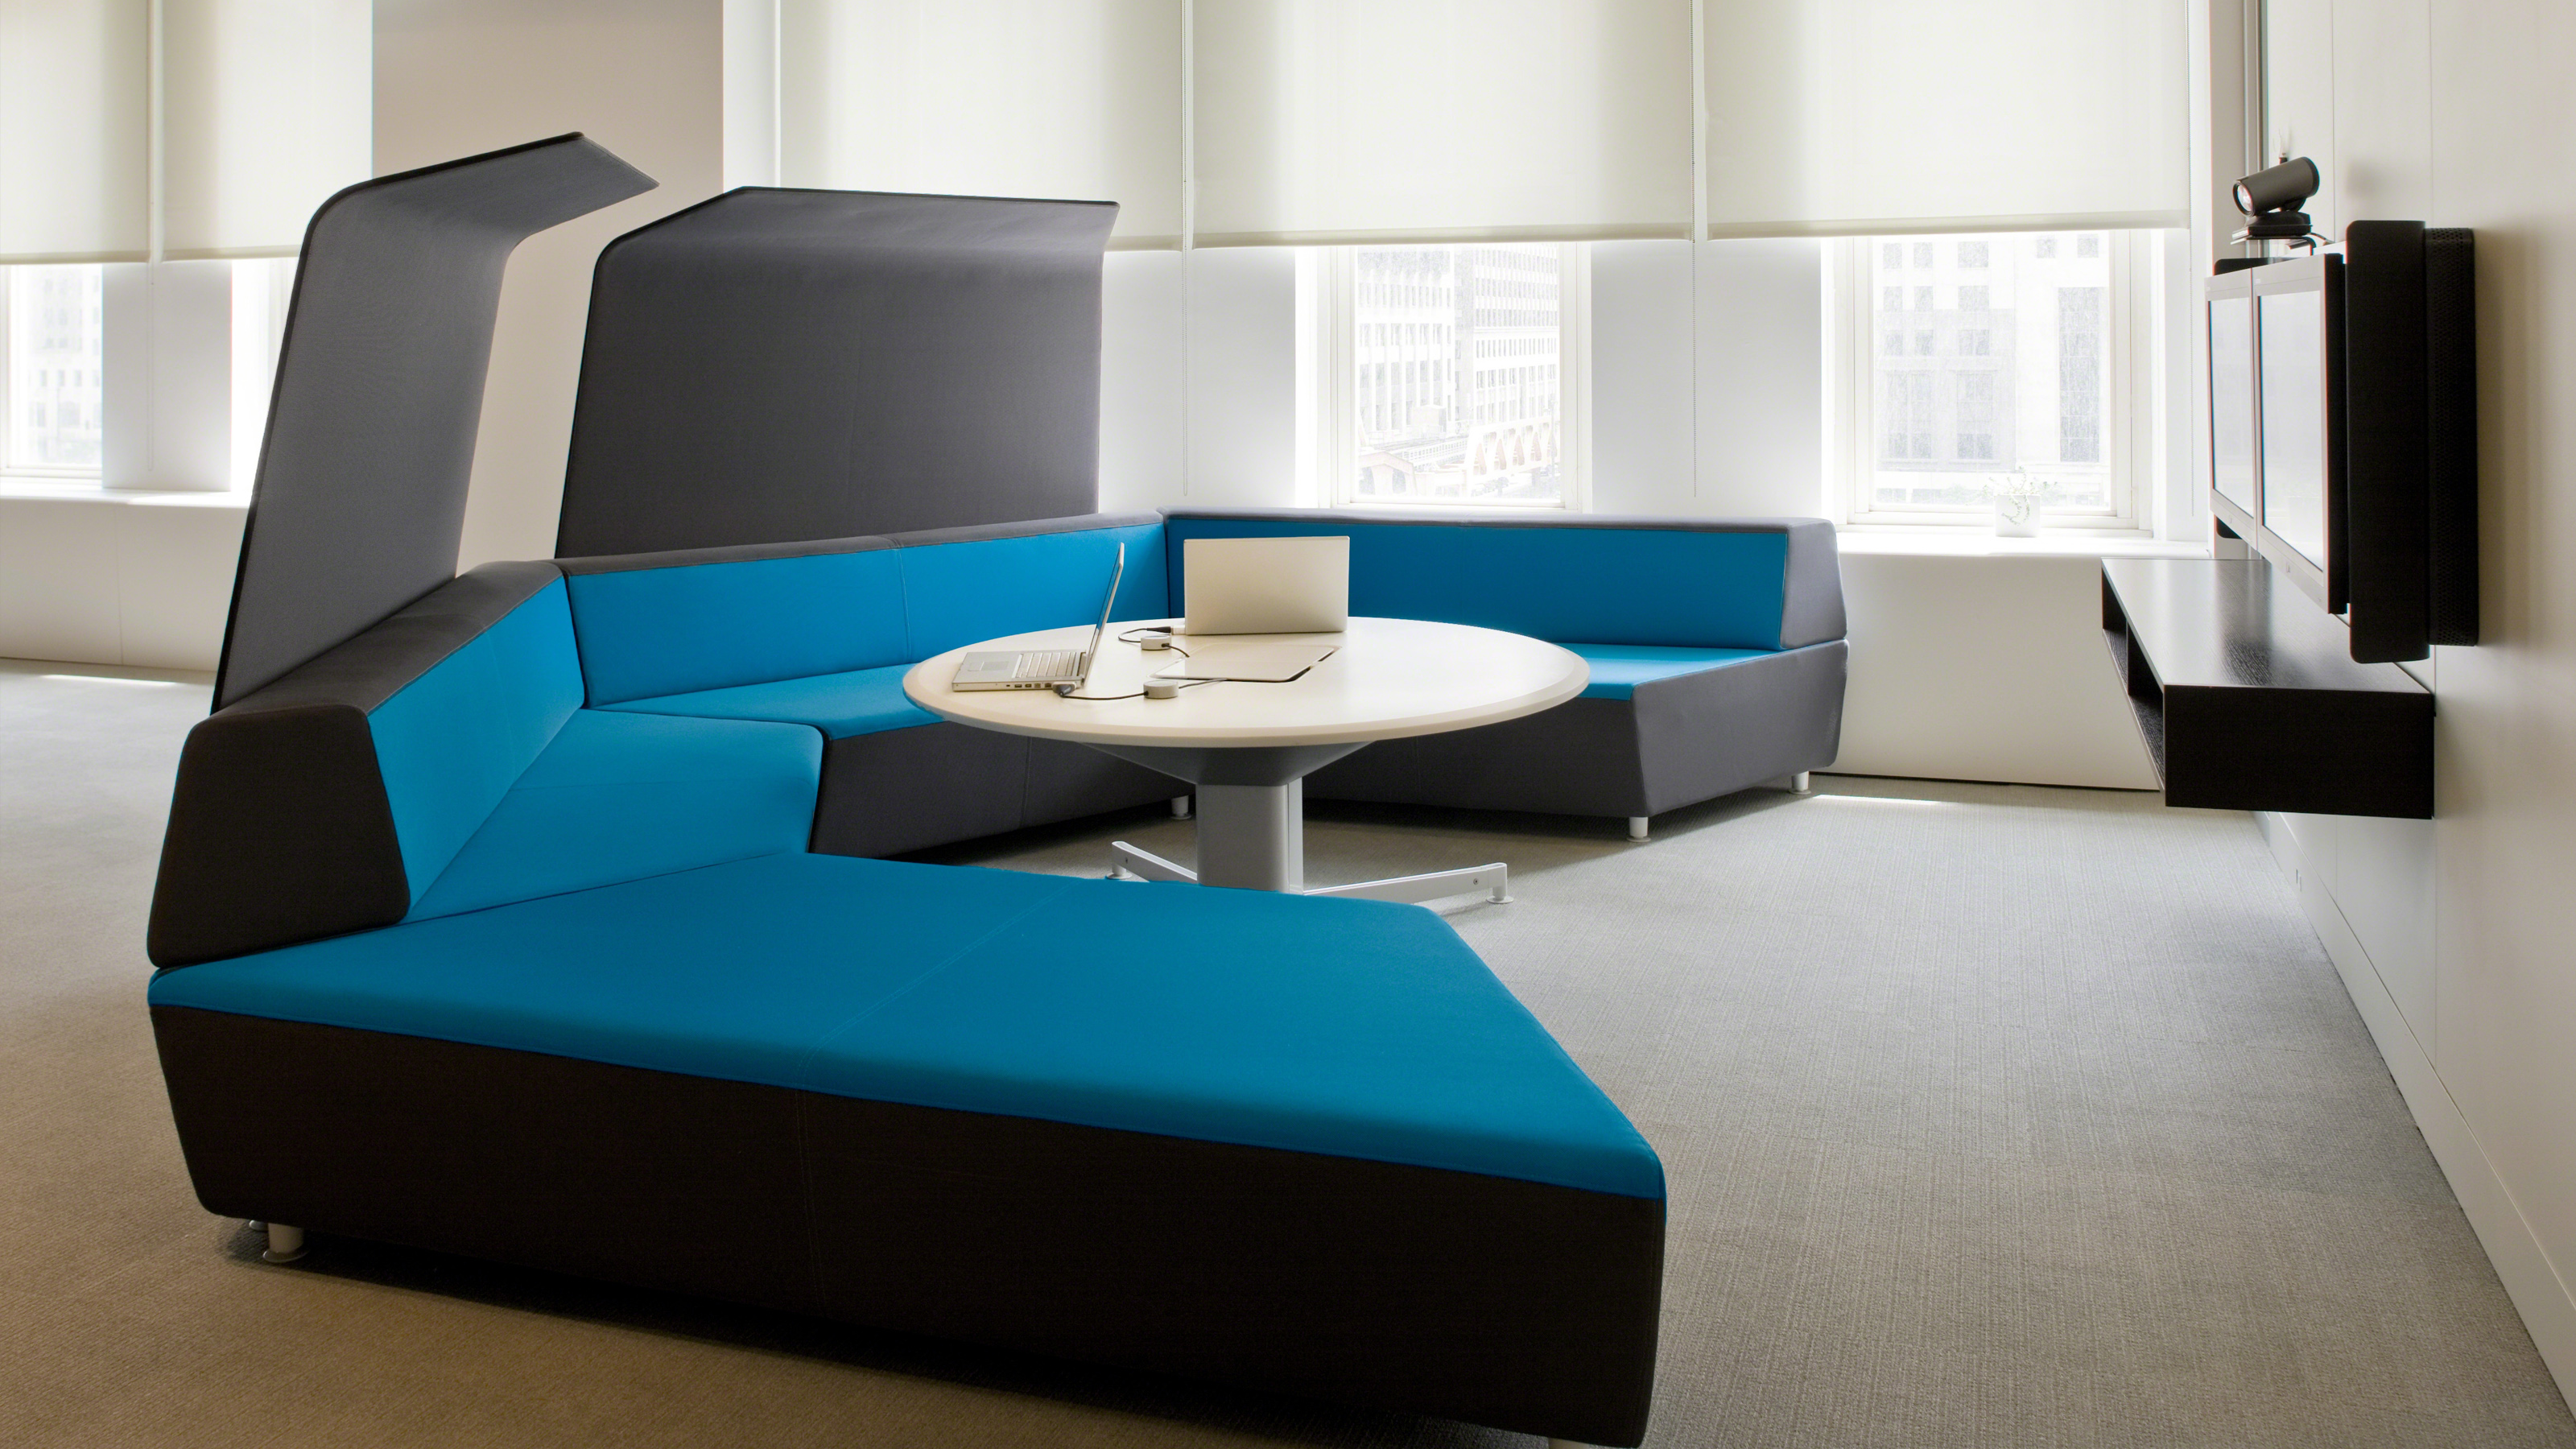 Media scape lounge seating office furnishings steelcase for Modern lounge furniture